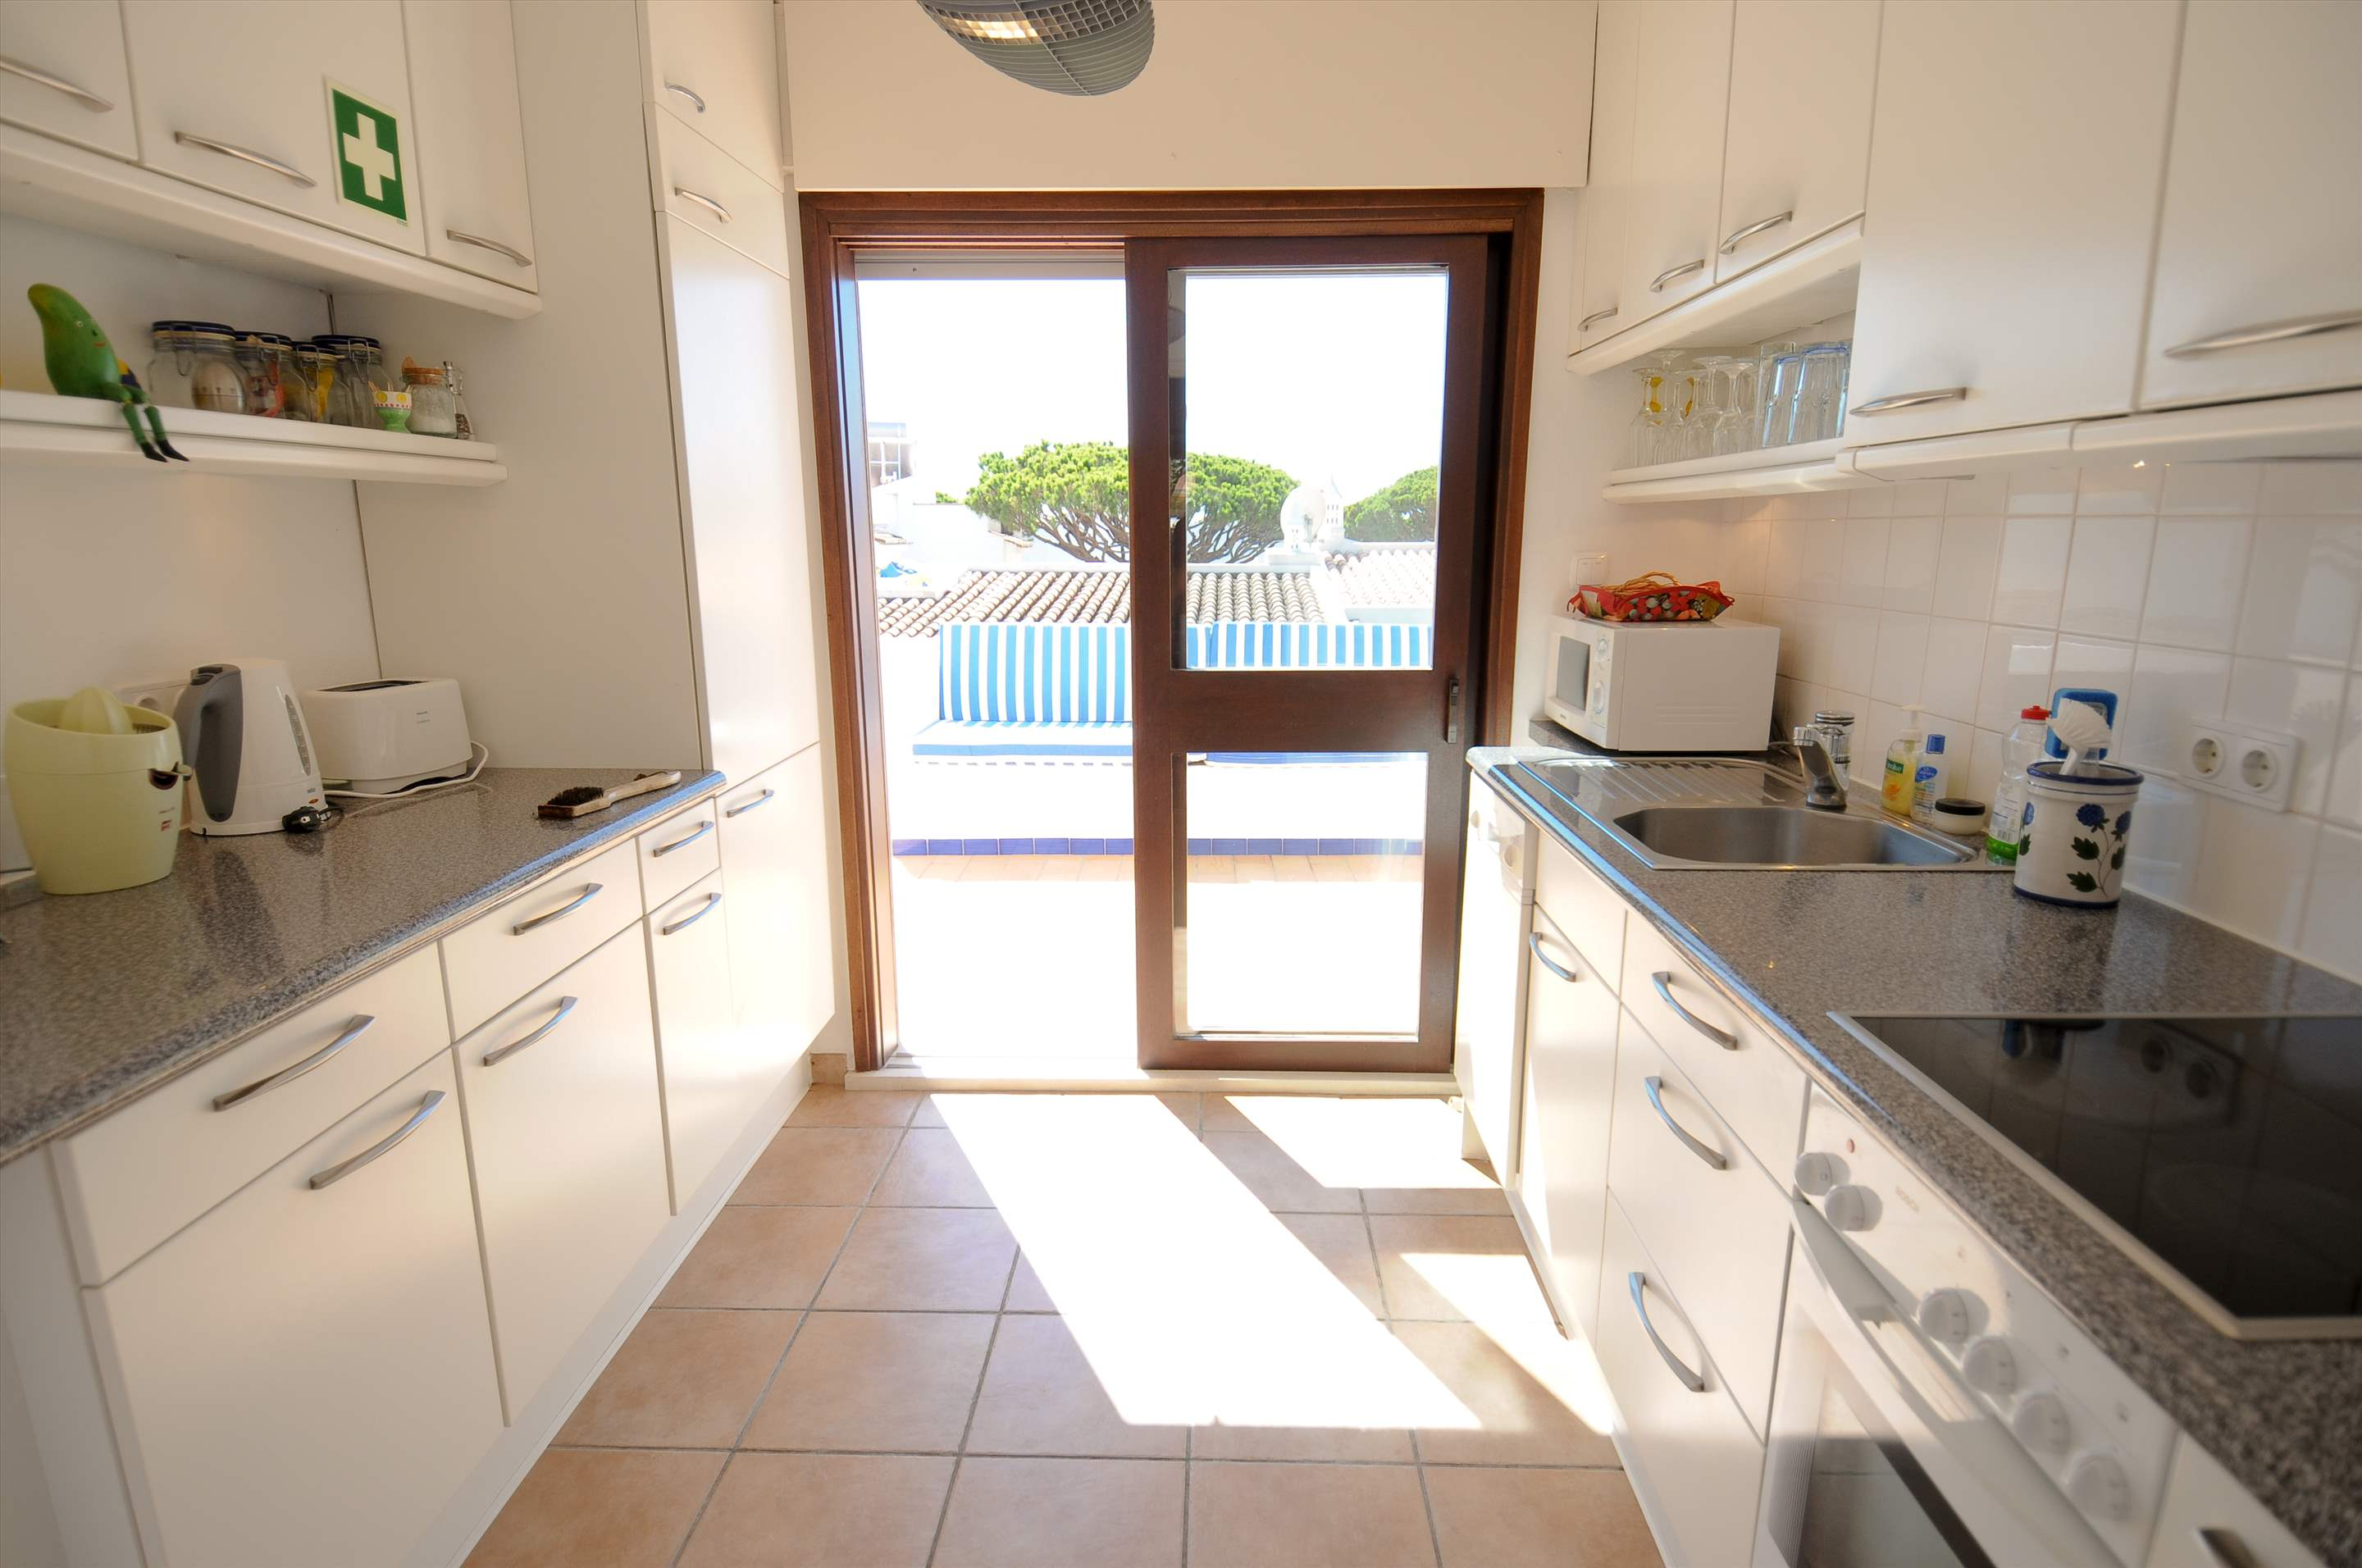 Villa Giroud, 2 bedroom villa in Vale do Lobo, Algarve Photo #7